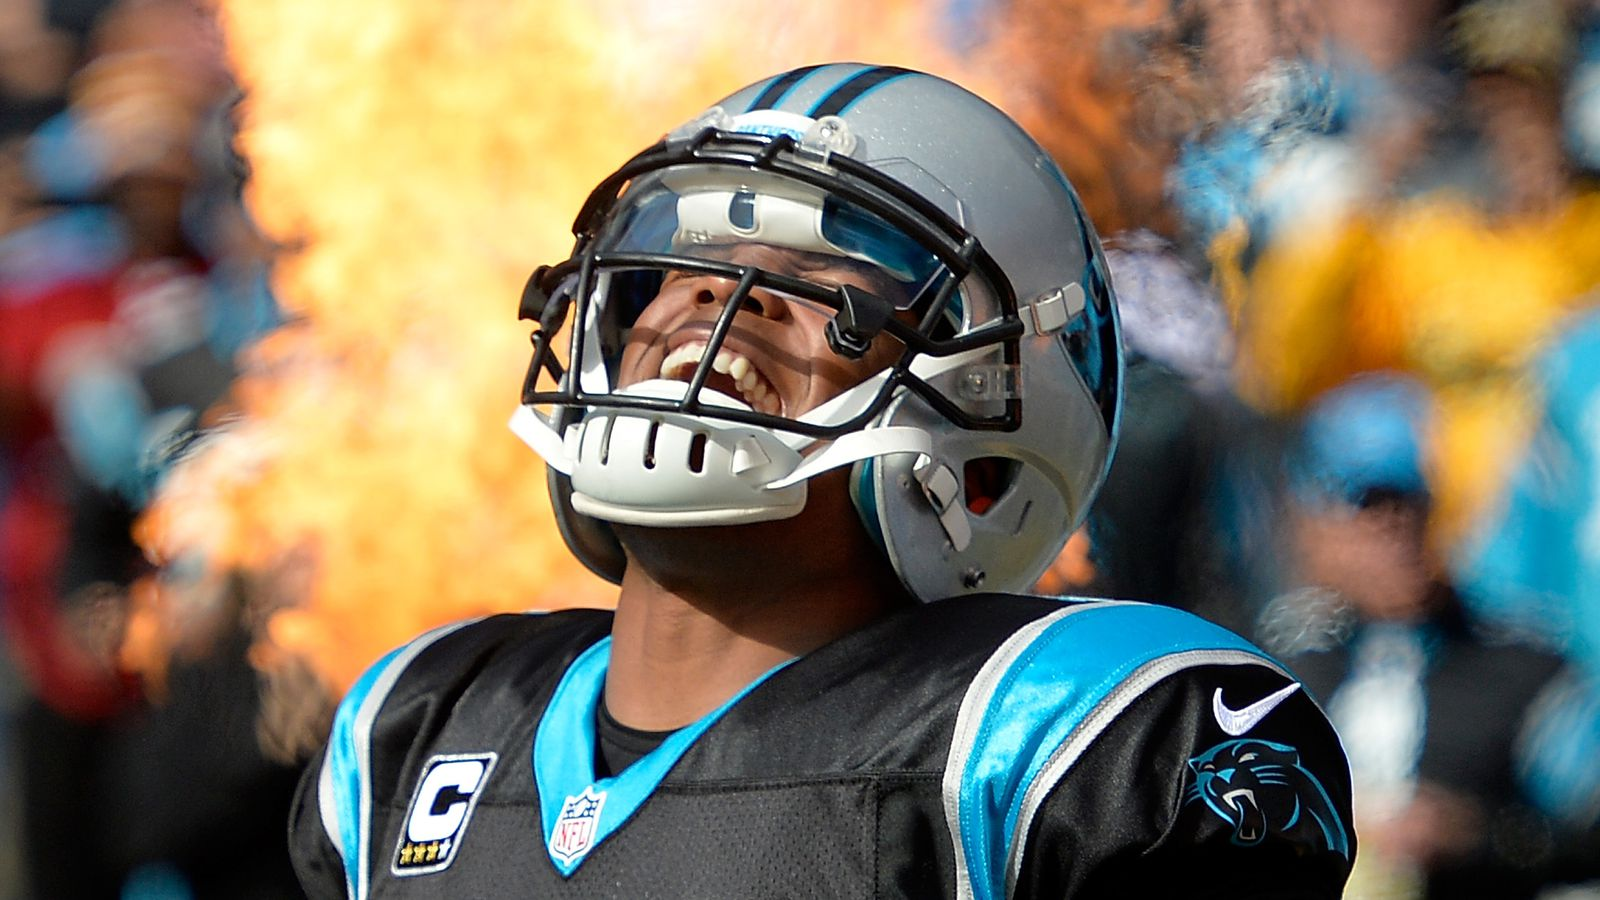 af328b987b6 Why does Cam Newton do the Superman celebration  - SBNation.com